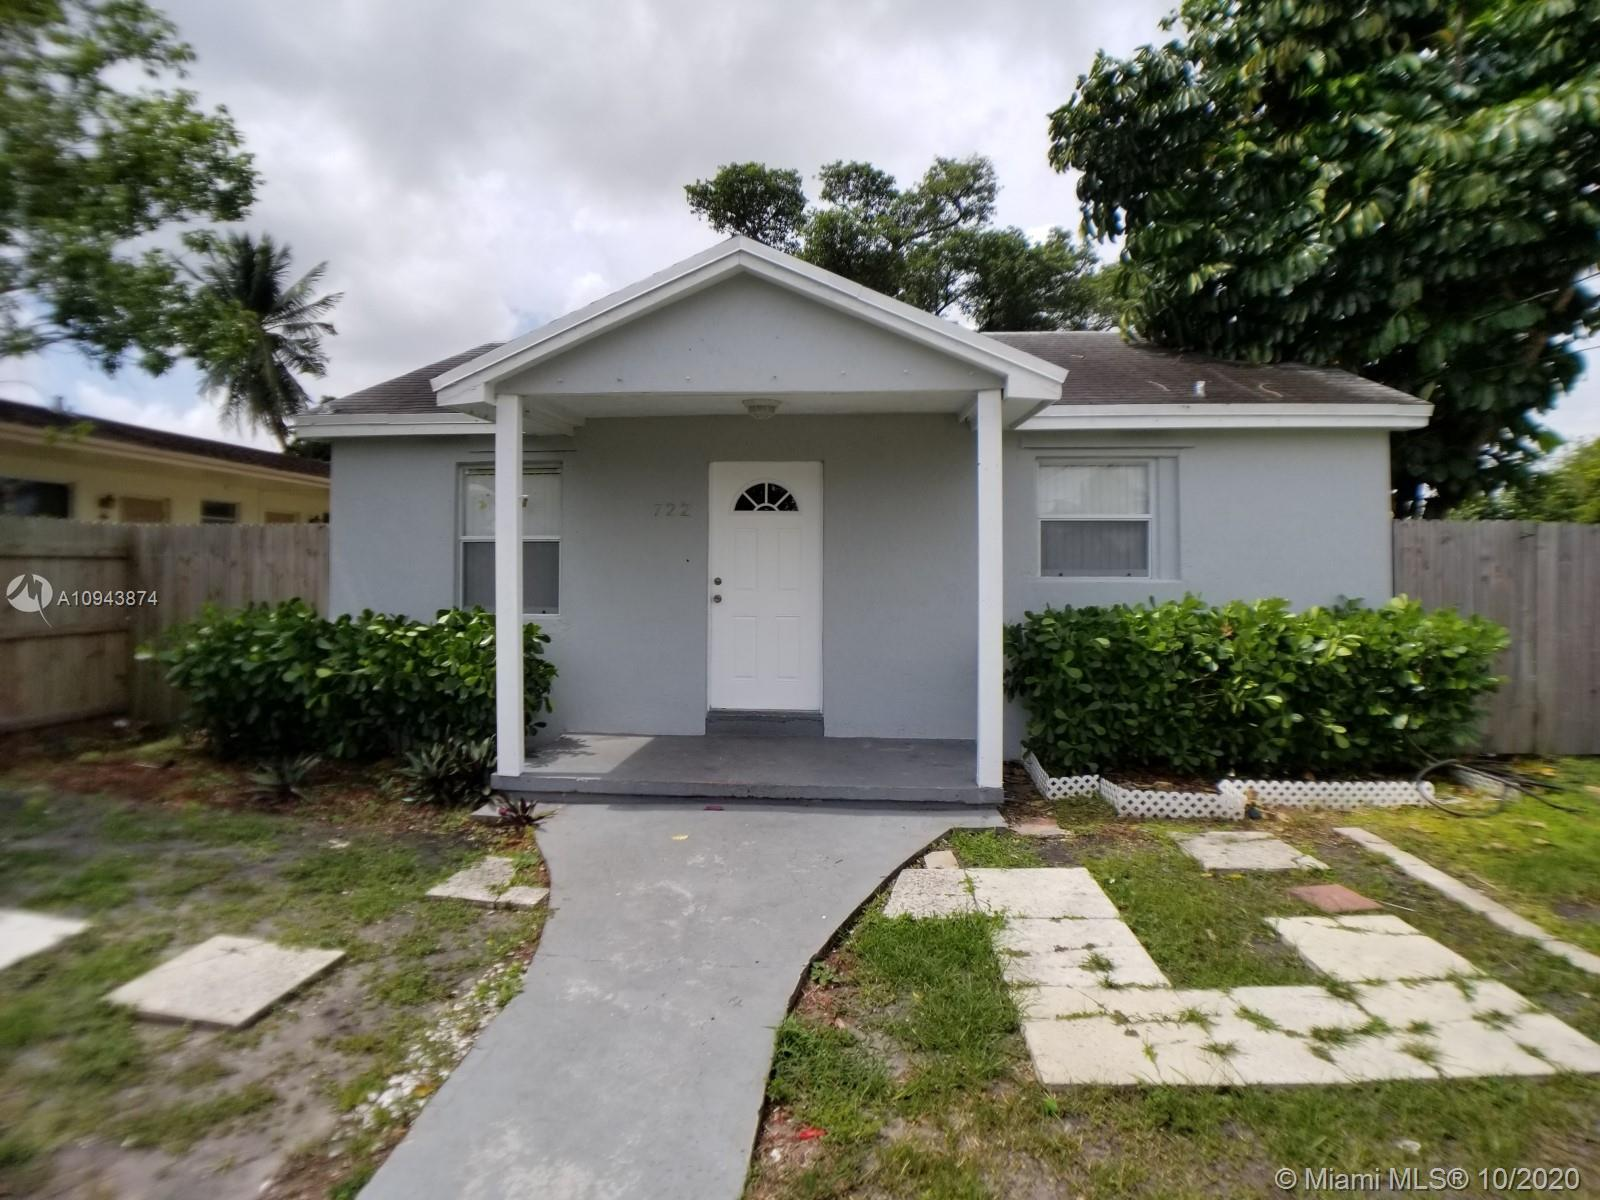 For Sale 3beds/1bath Single Family House in Hollywood. Tile and laminated wood, open kitchen, wall a